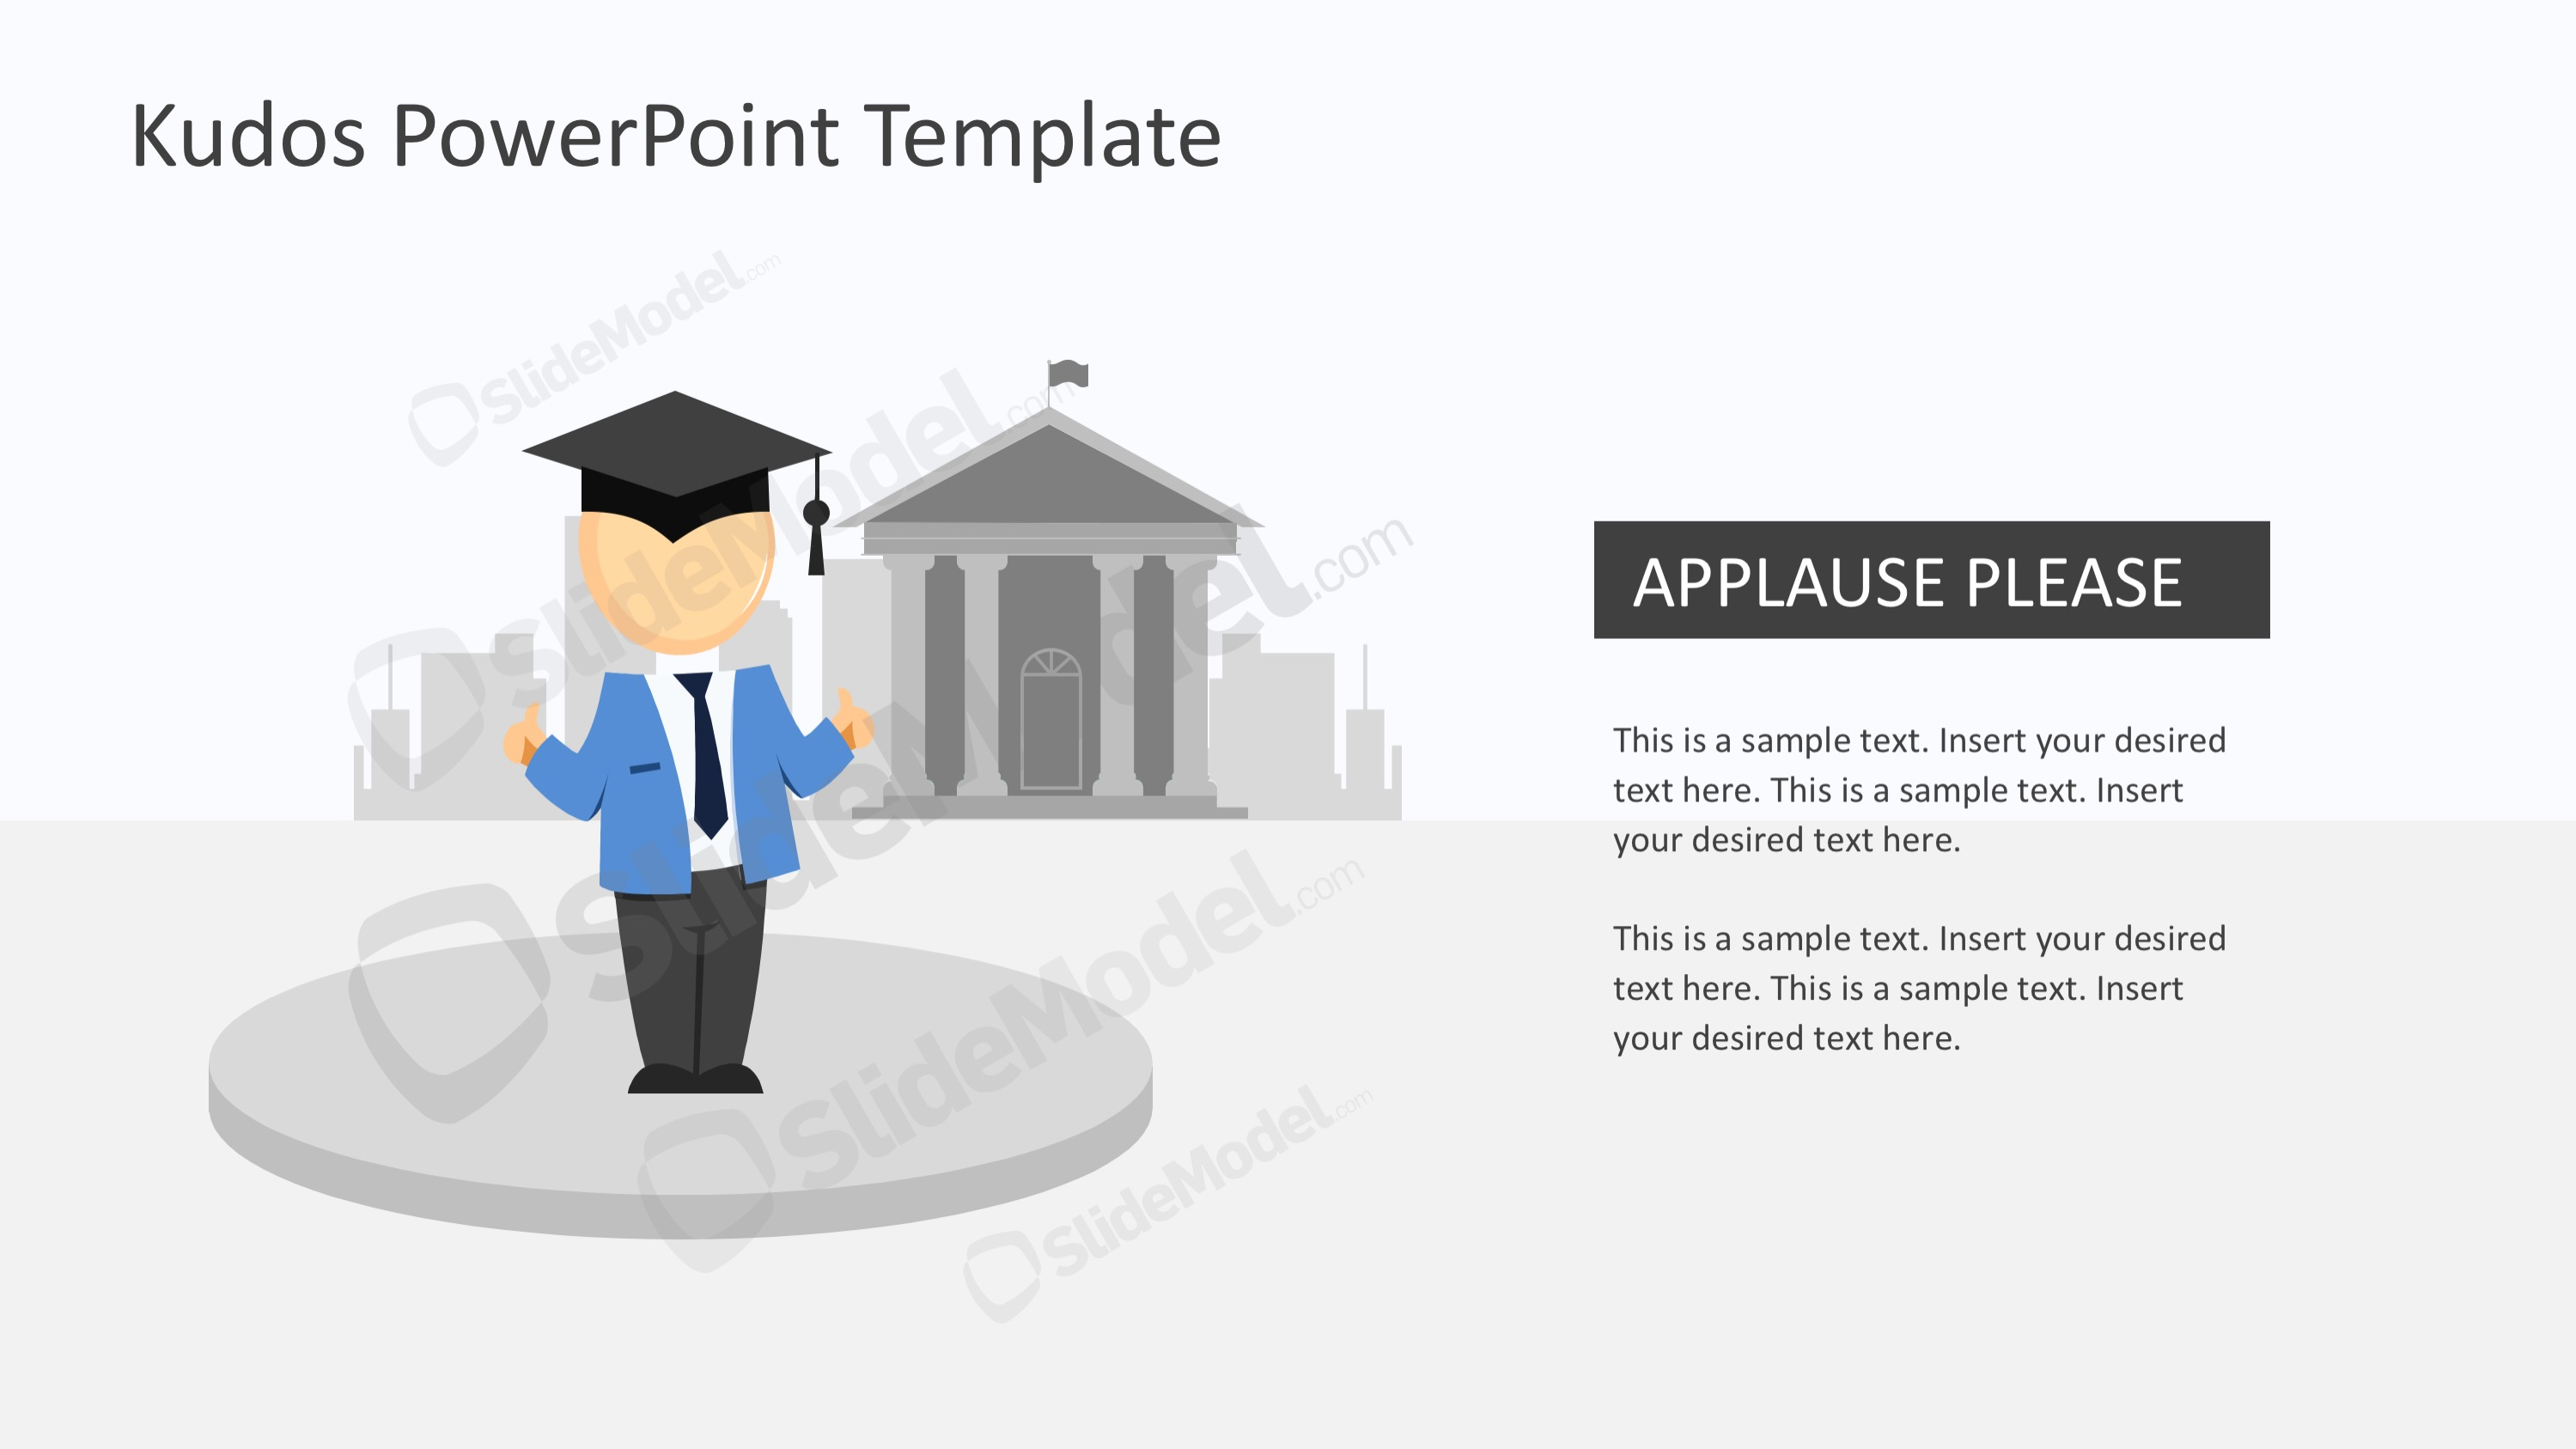 kudos metaphor powerpoint template slidemodel